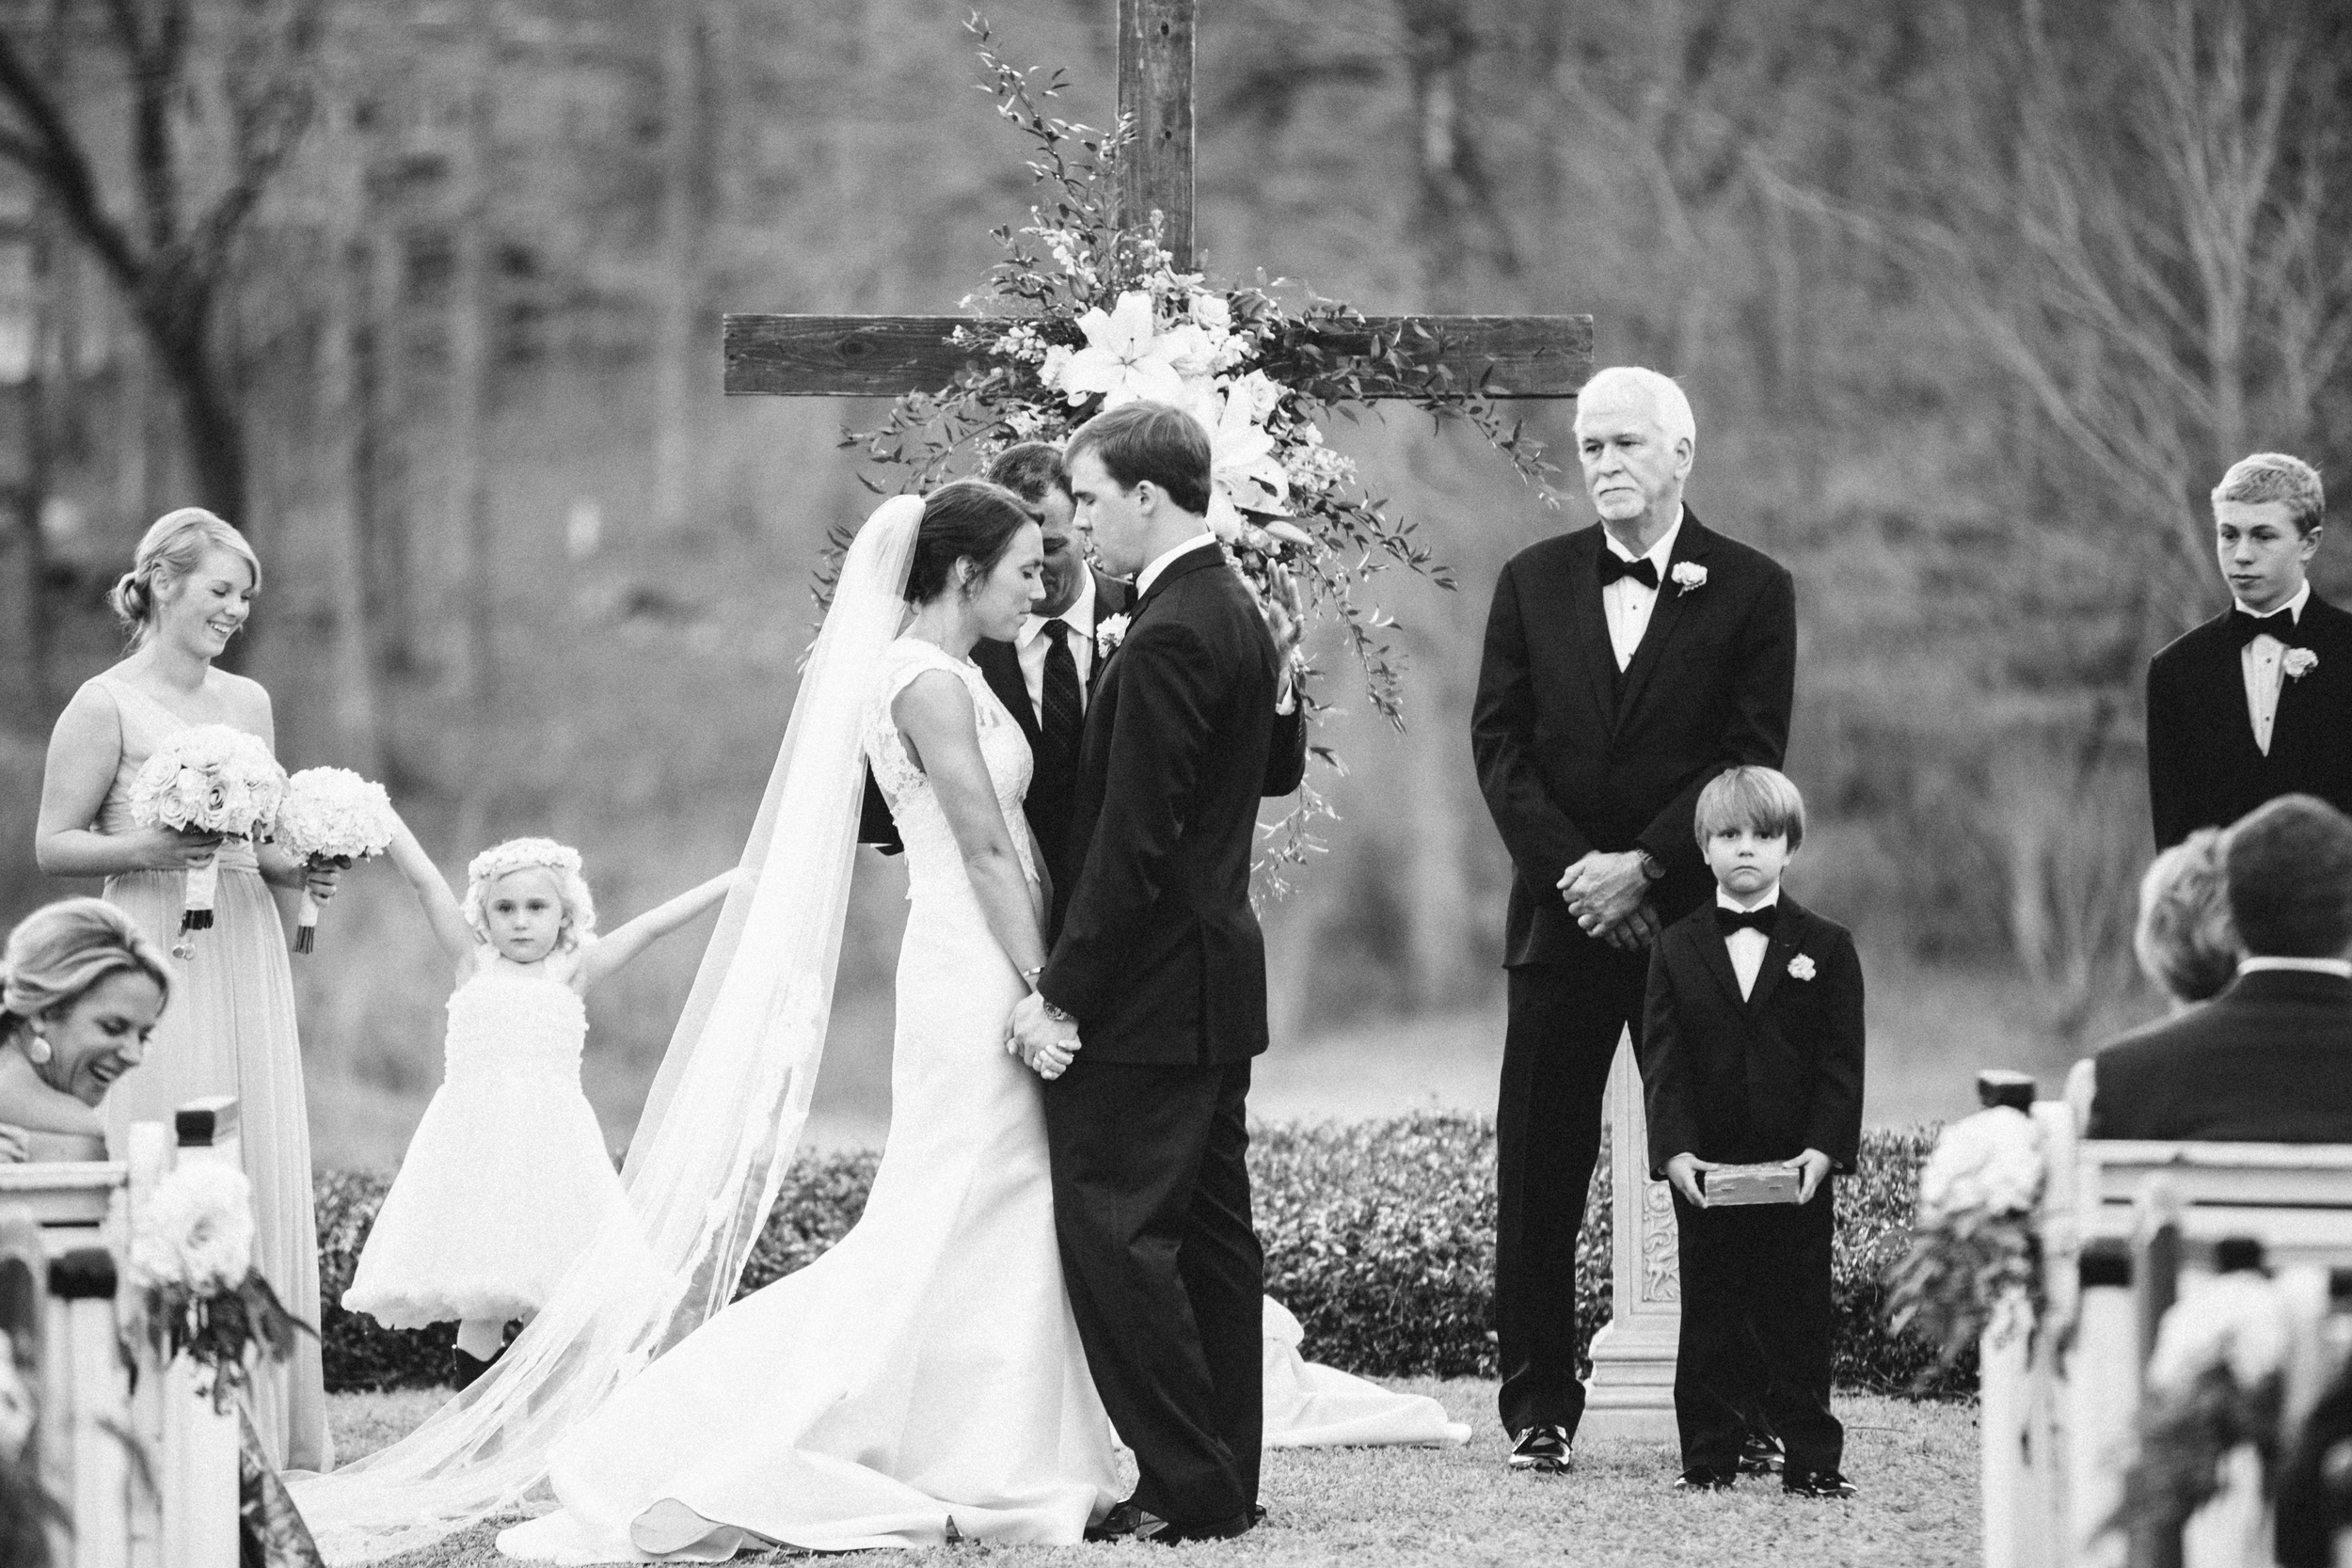 Pews at a Southern Wedding. Photo by Taylor Lord Photography.